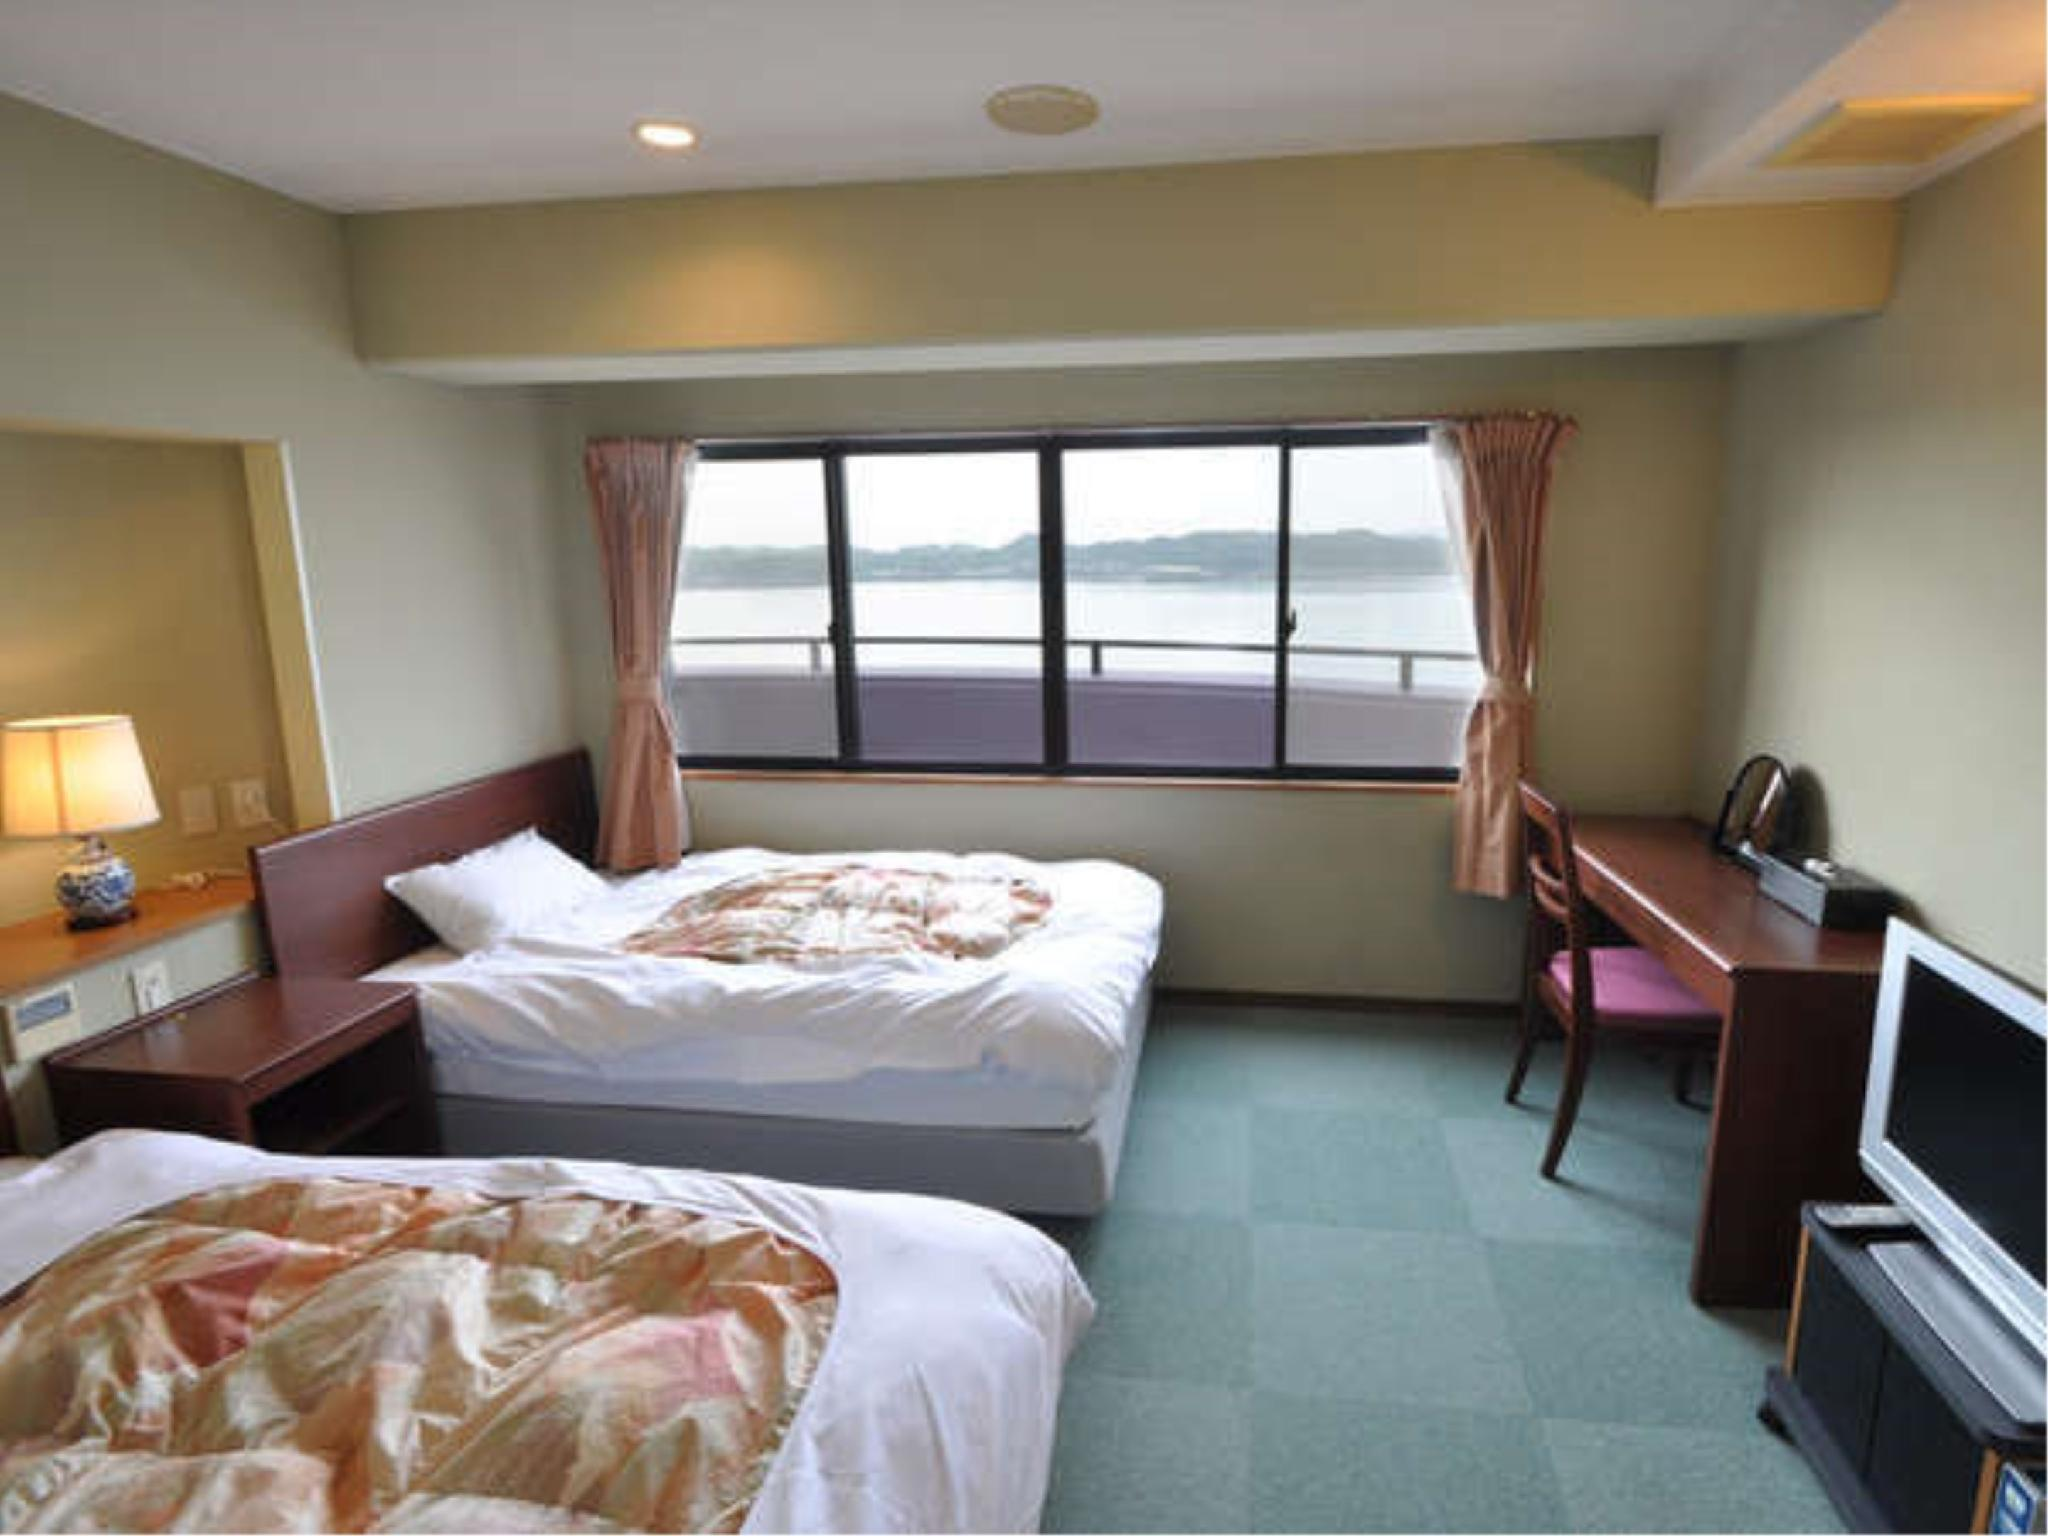 Japanese/Western-style Room (Japanese/Western-style Room (2 Beds, Ocean View, Main Building))